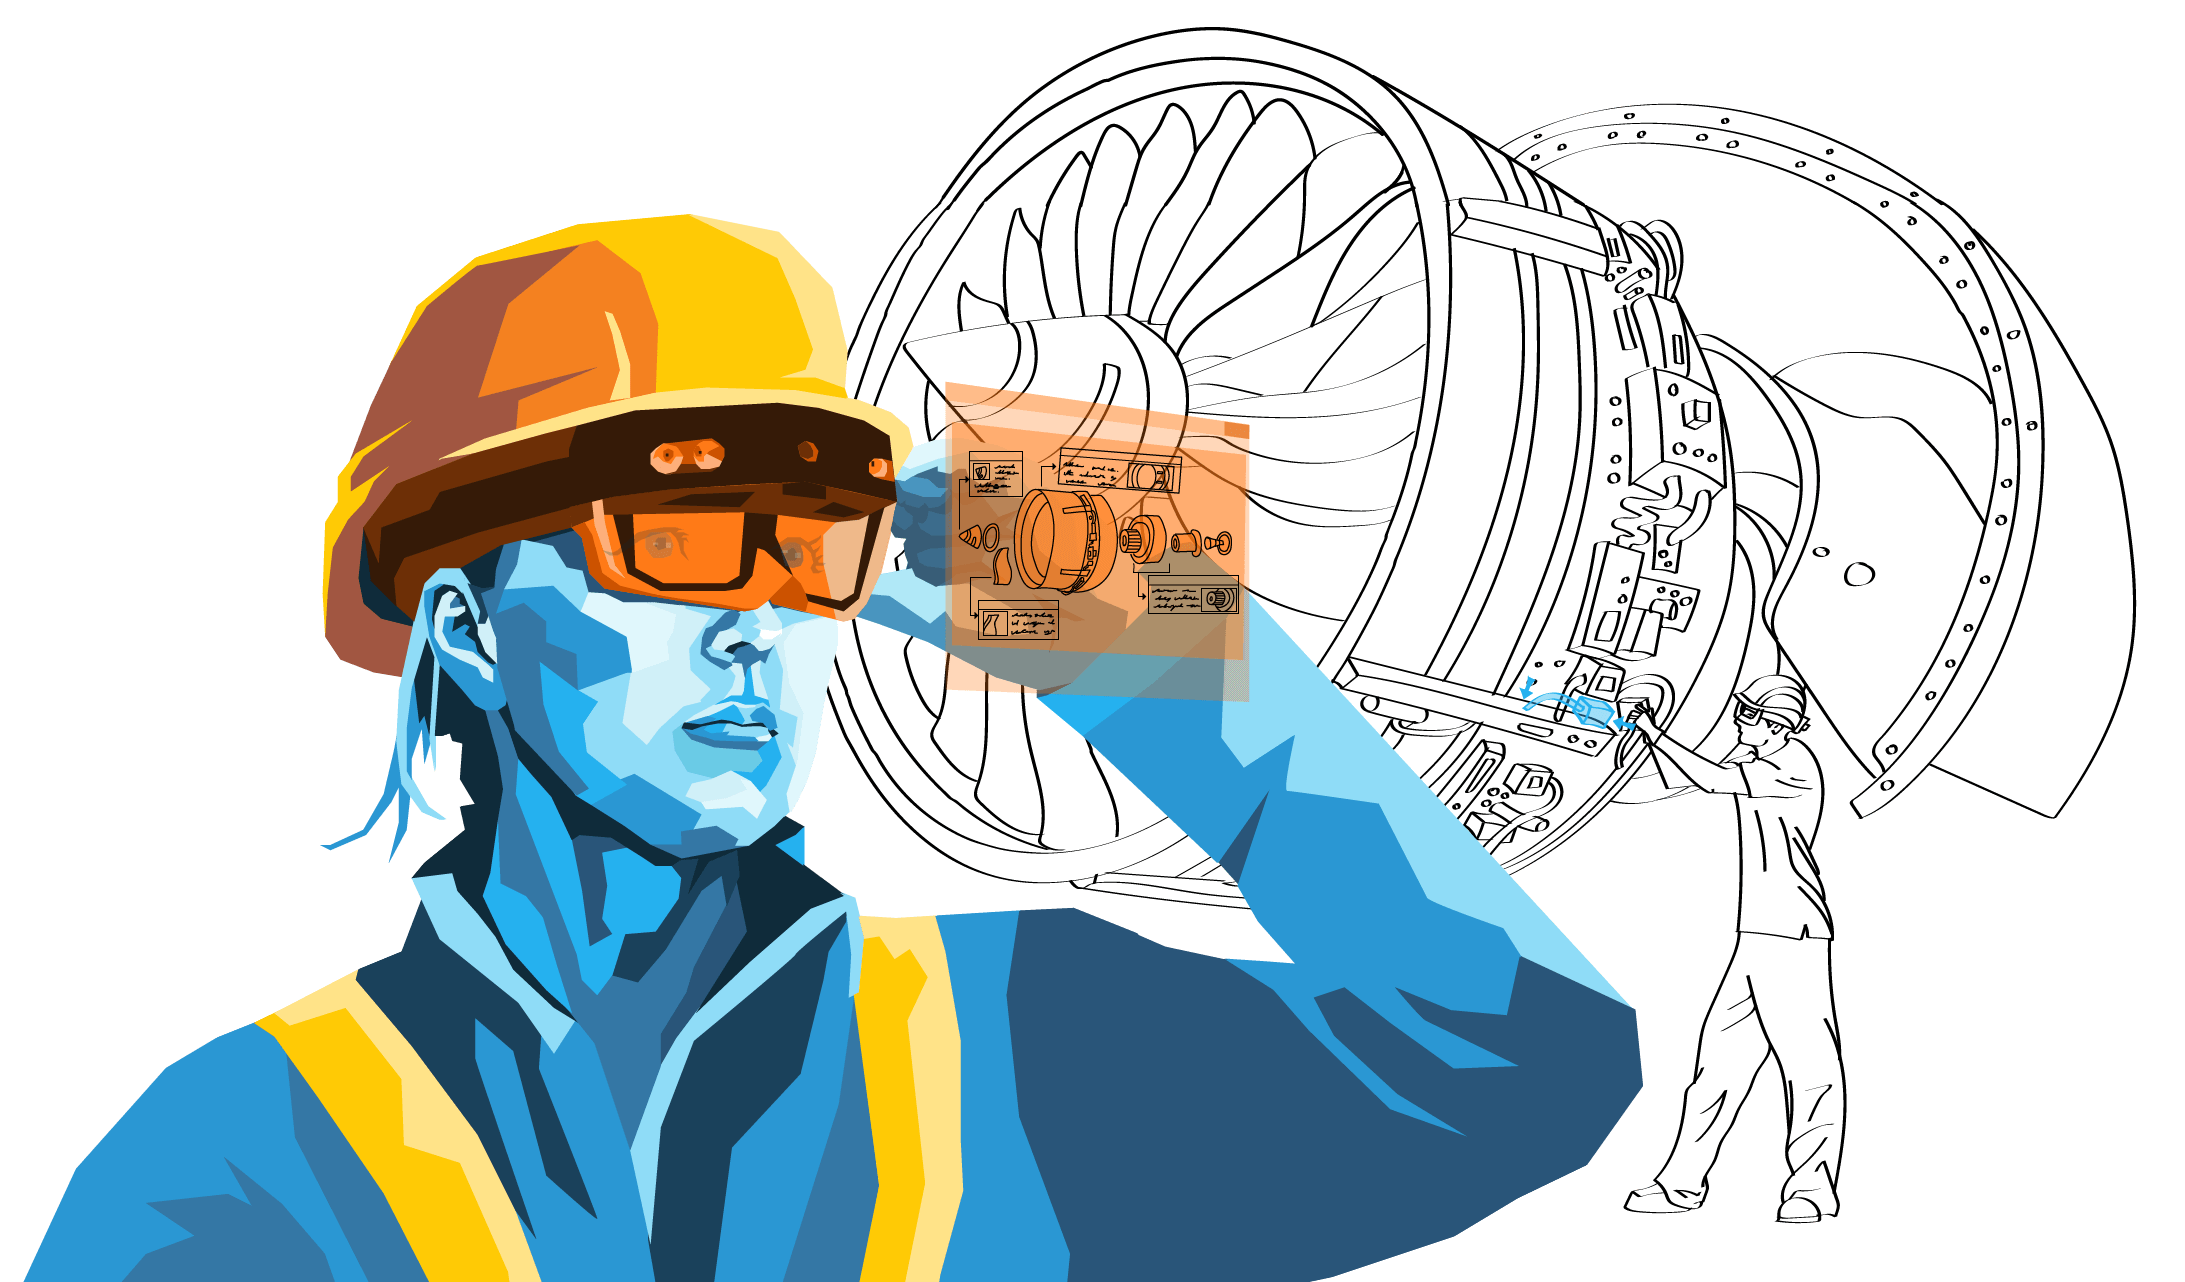 AR assembly instructions being used by worker to pull up manual through his AR headset - Interaptix Illustration